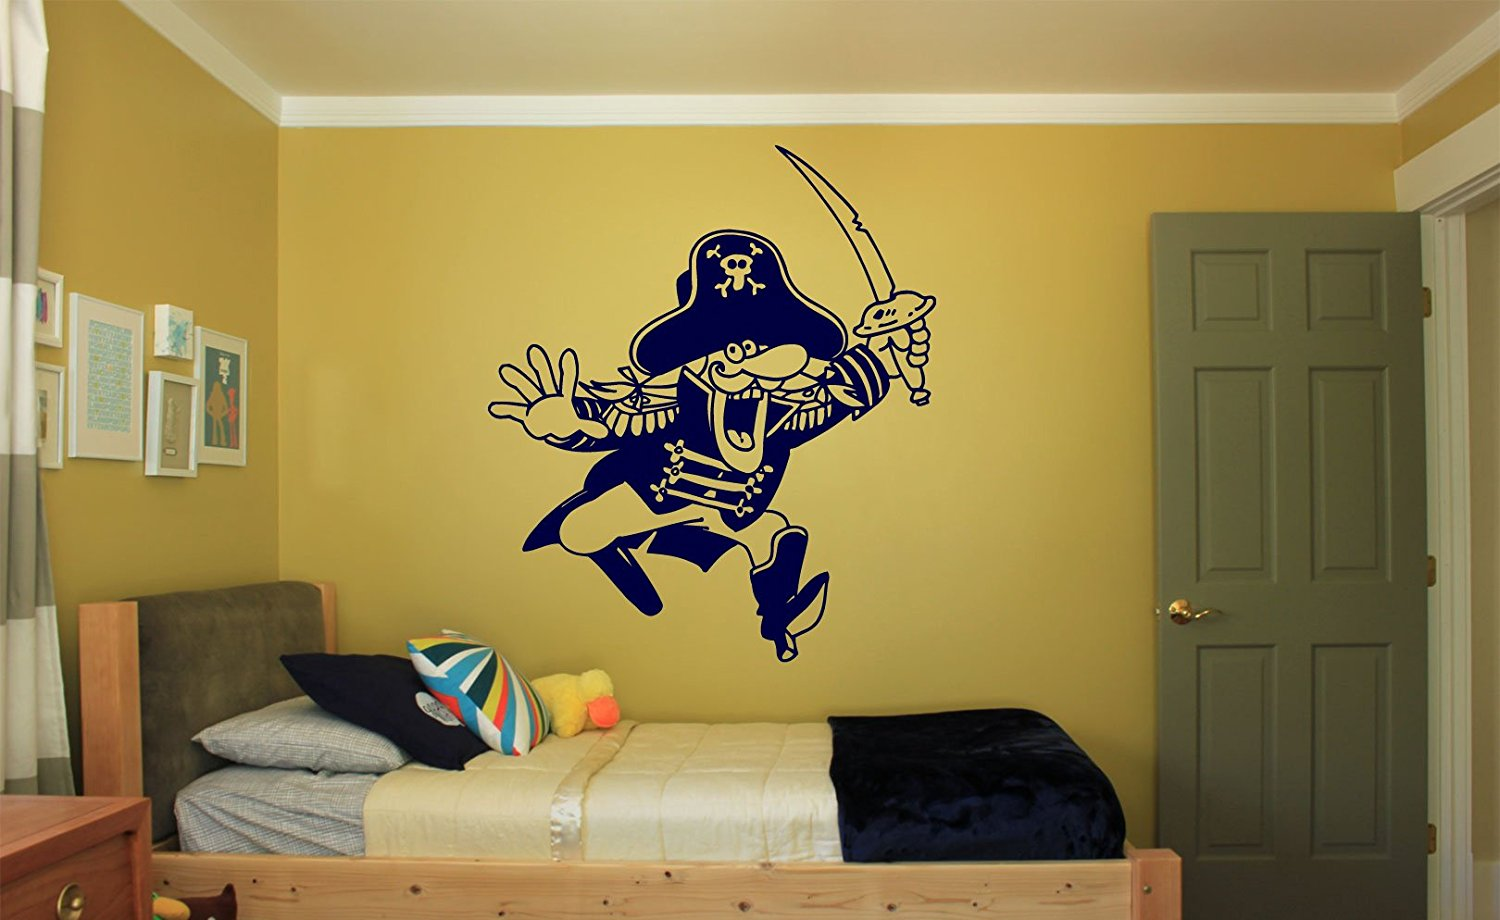 Cheap Wall Decals Pirate, find Wall Decals Pirate deals on line at ...